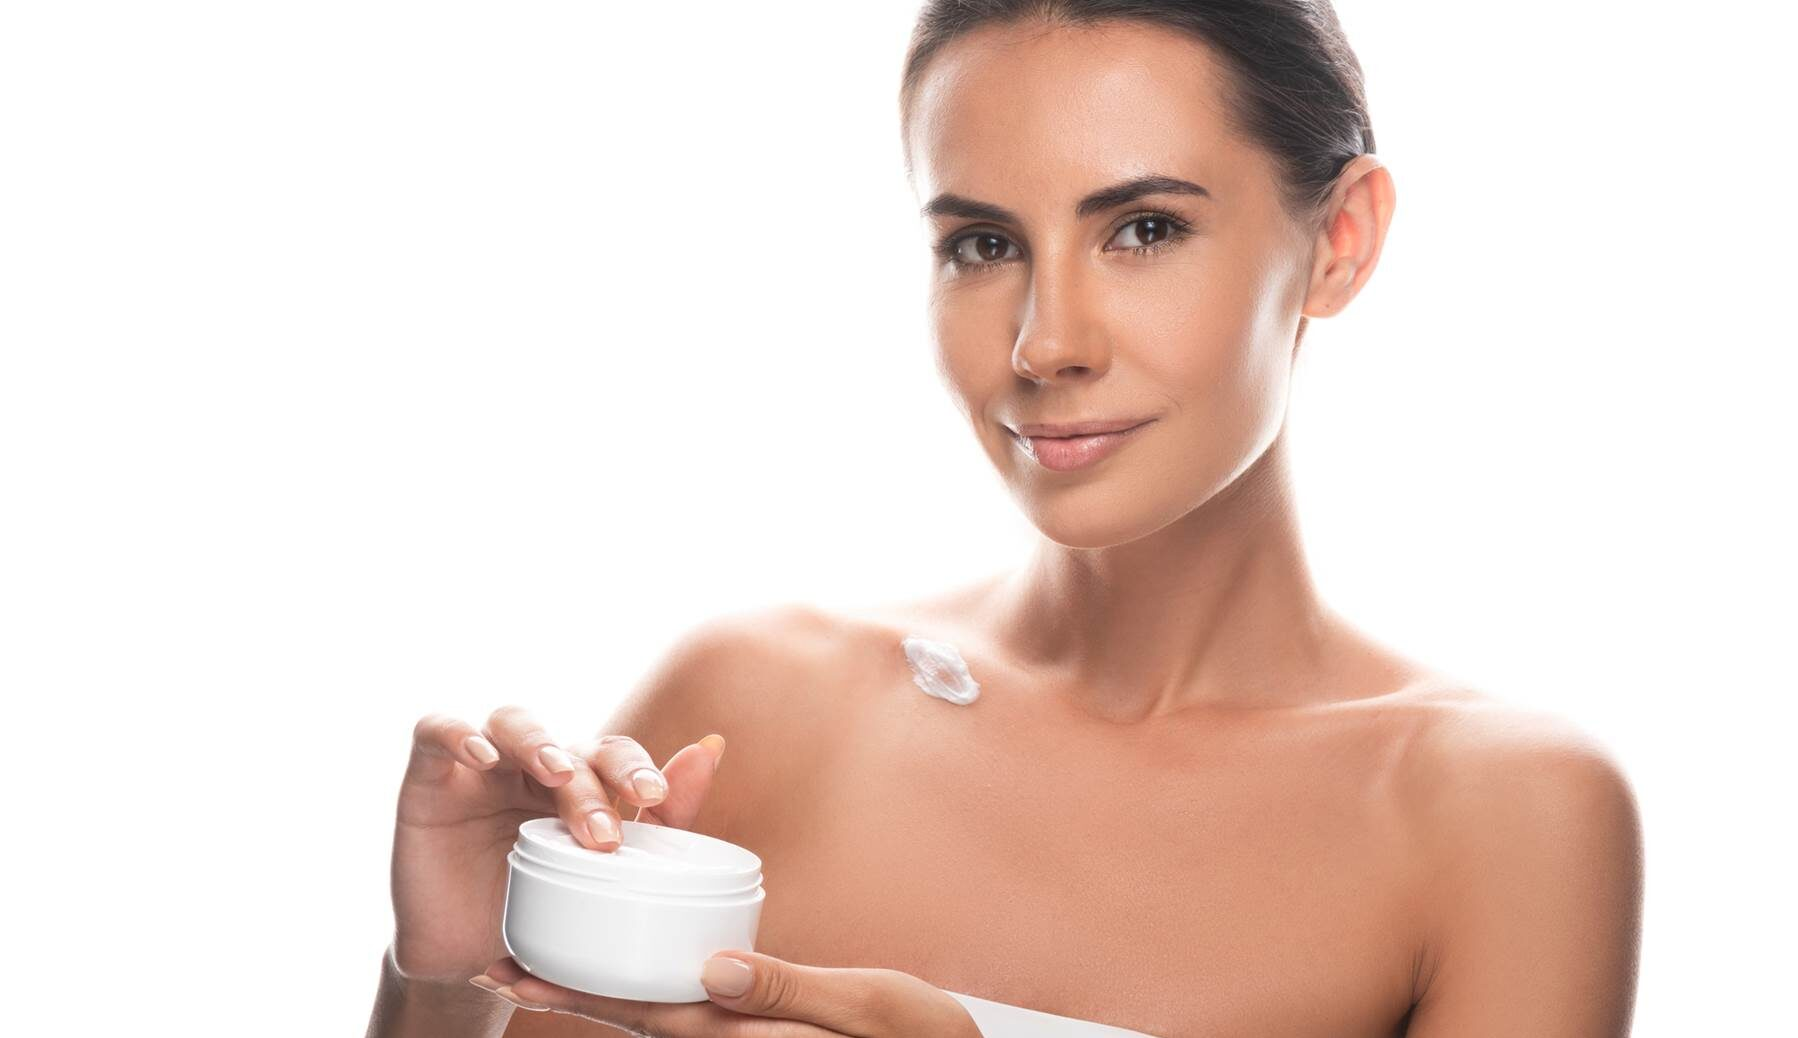 Beautiful woman using quality skincare products